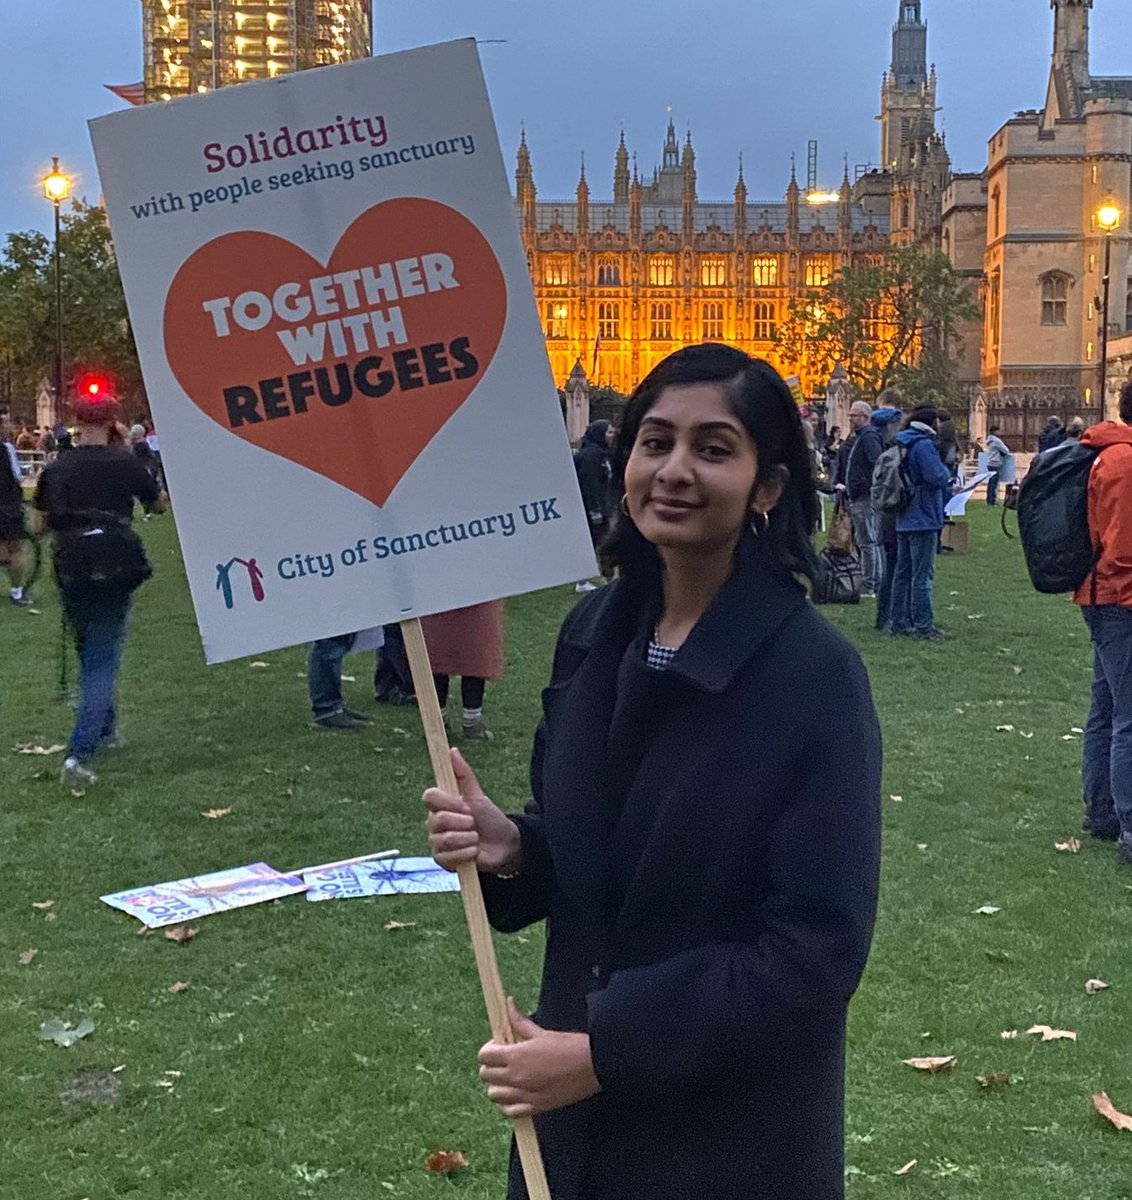 This evening, outside Parliament, I joined a rally to say: Refugees are welcome here ❤️